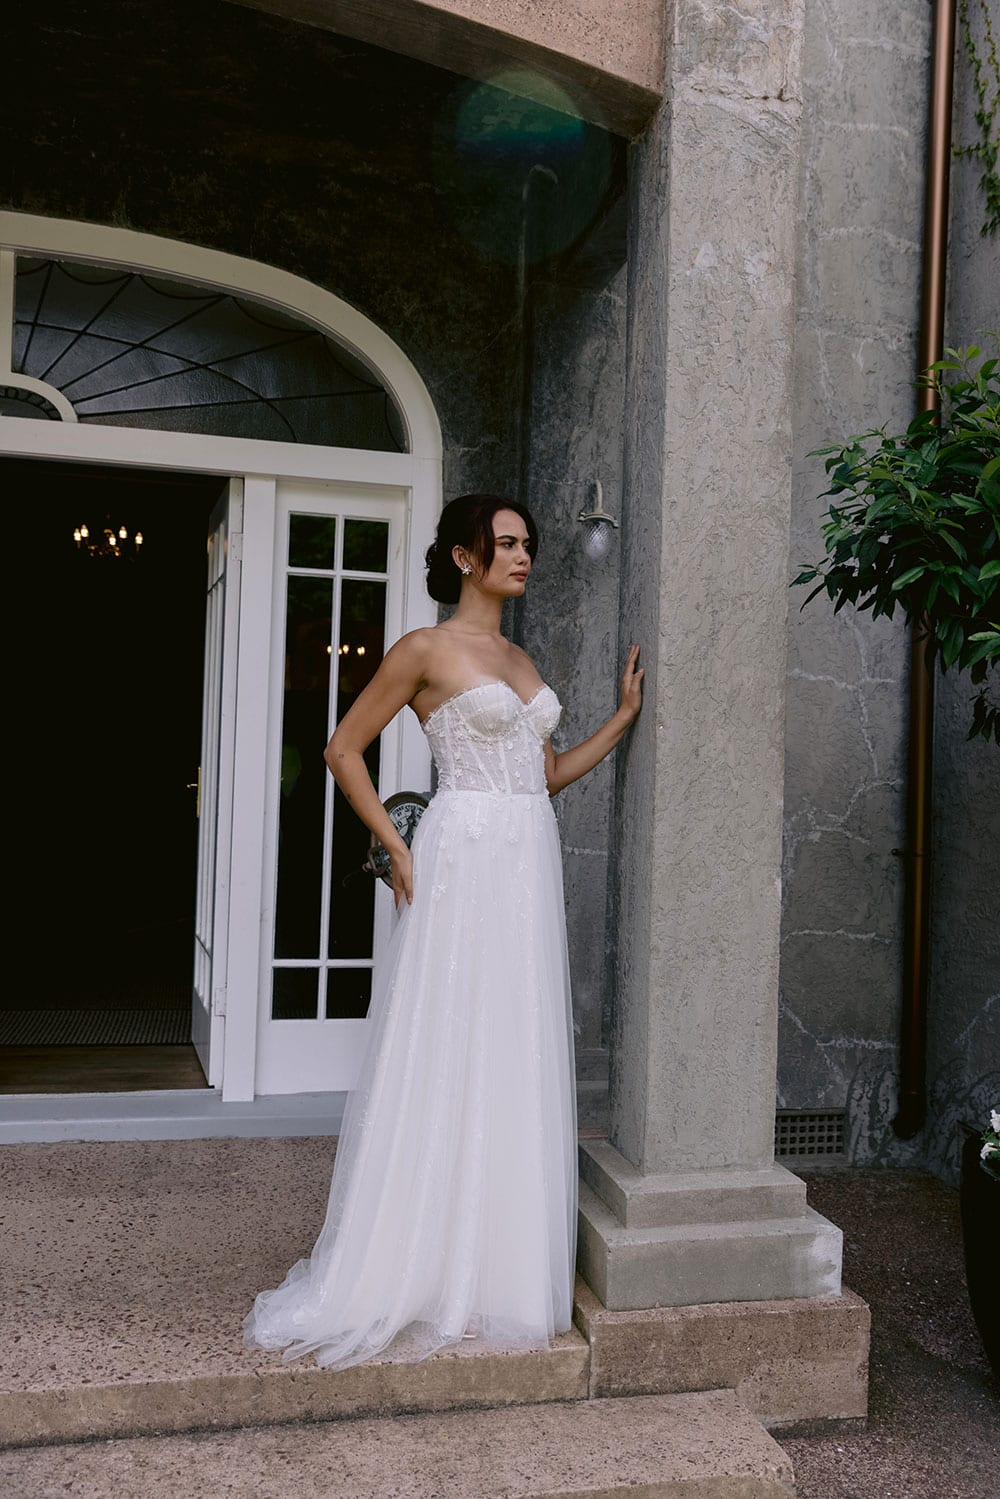 Hikari Wedding gown from Vinka Design - This modern wedding dress has a structured semi-sheer bodice with hand-appliqued lace of stars and flowers. The skirt is made with multiple layers of soft tulle. Model wearing gown in entrance to old building in Clevedon, near Auckland.